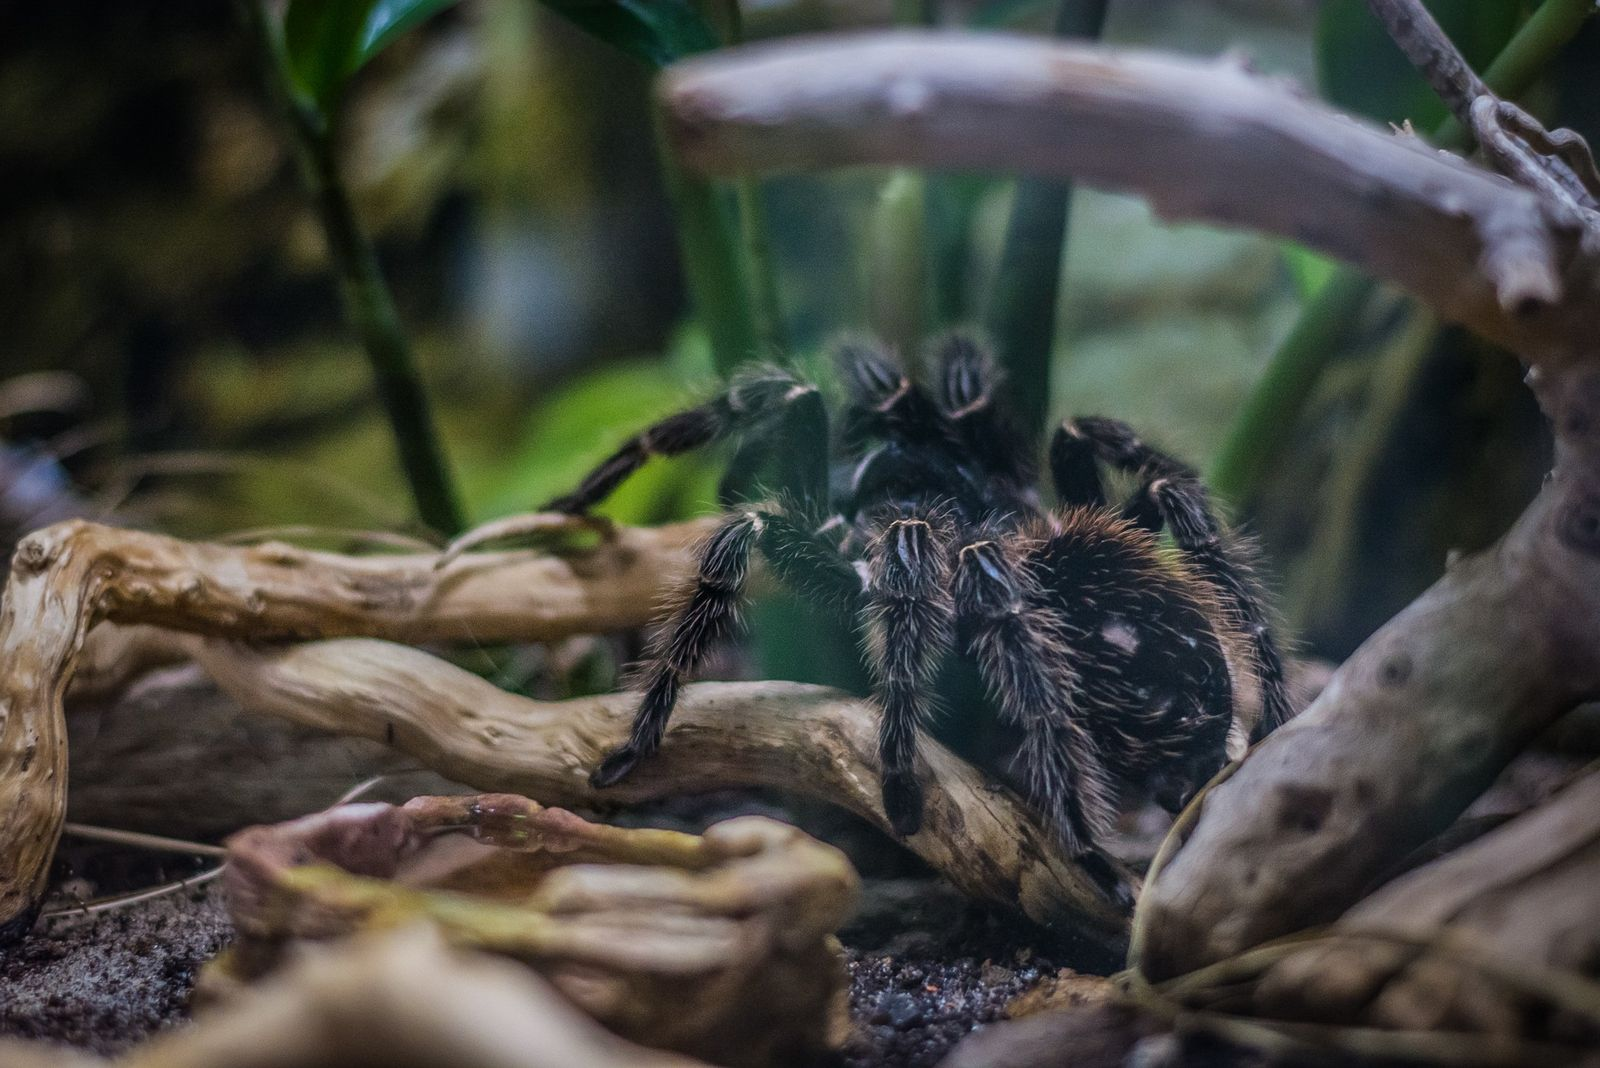 Finding a forever home for trafficked tarantulas